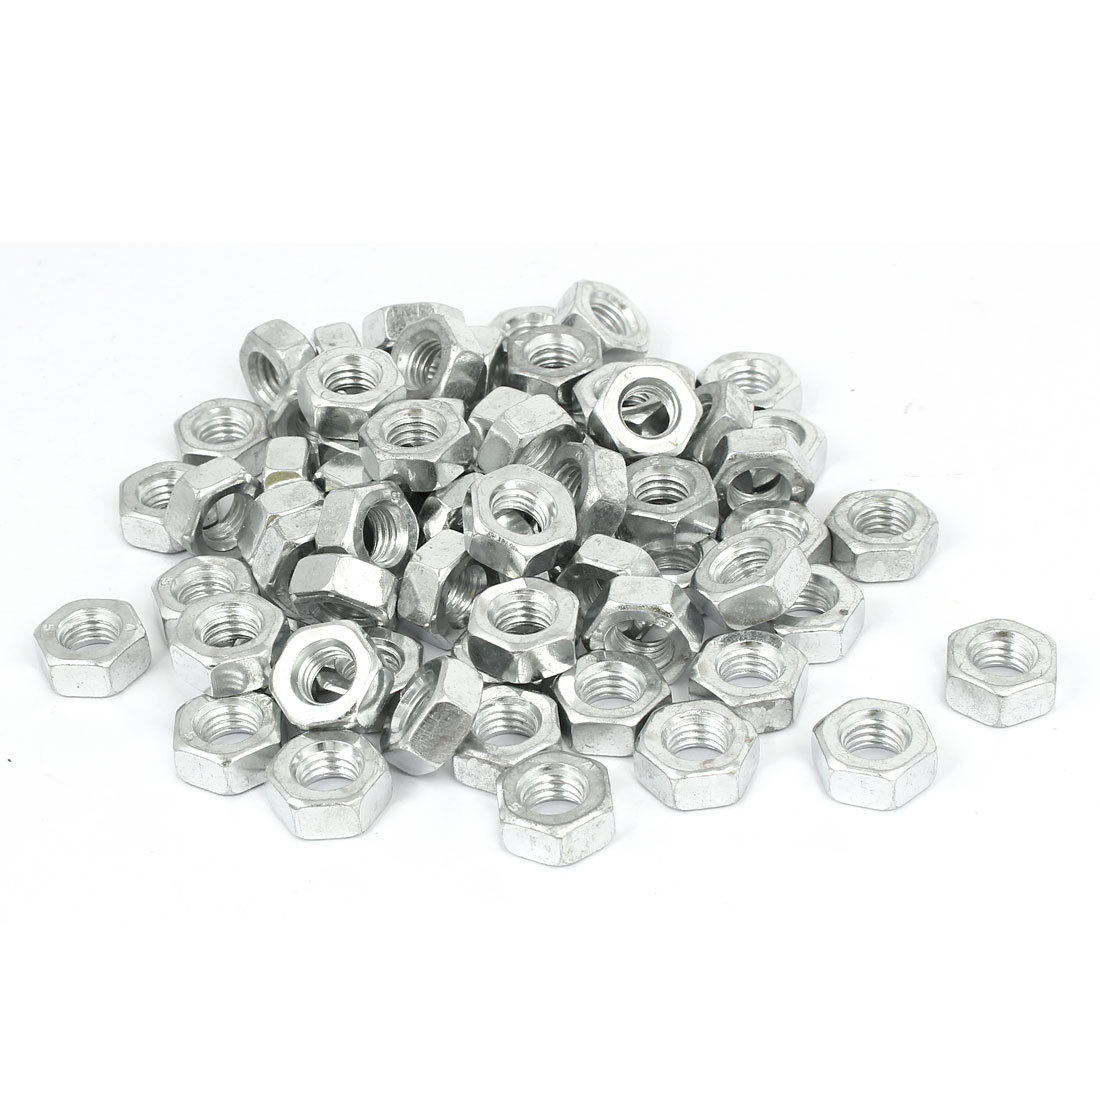 M10 x 8mm Iron Zinc Plated Machine Screw Hex Hexagon Nuts Fastener 100pcs